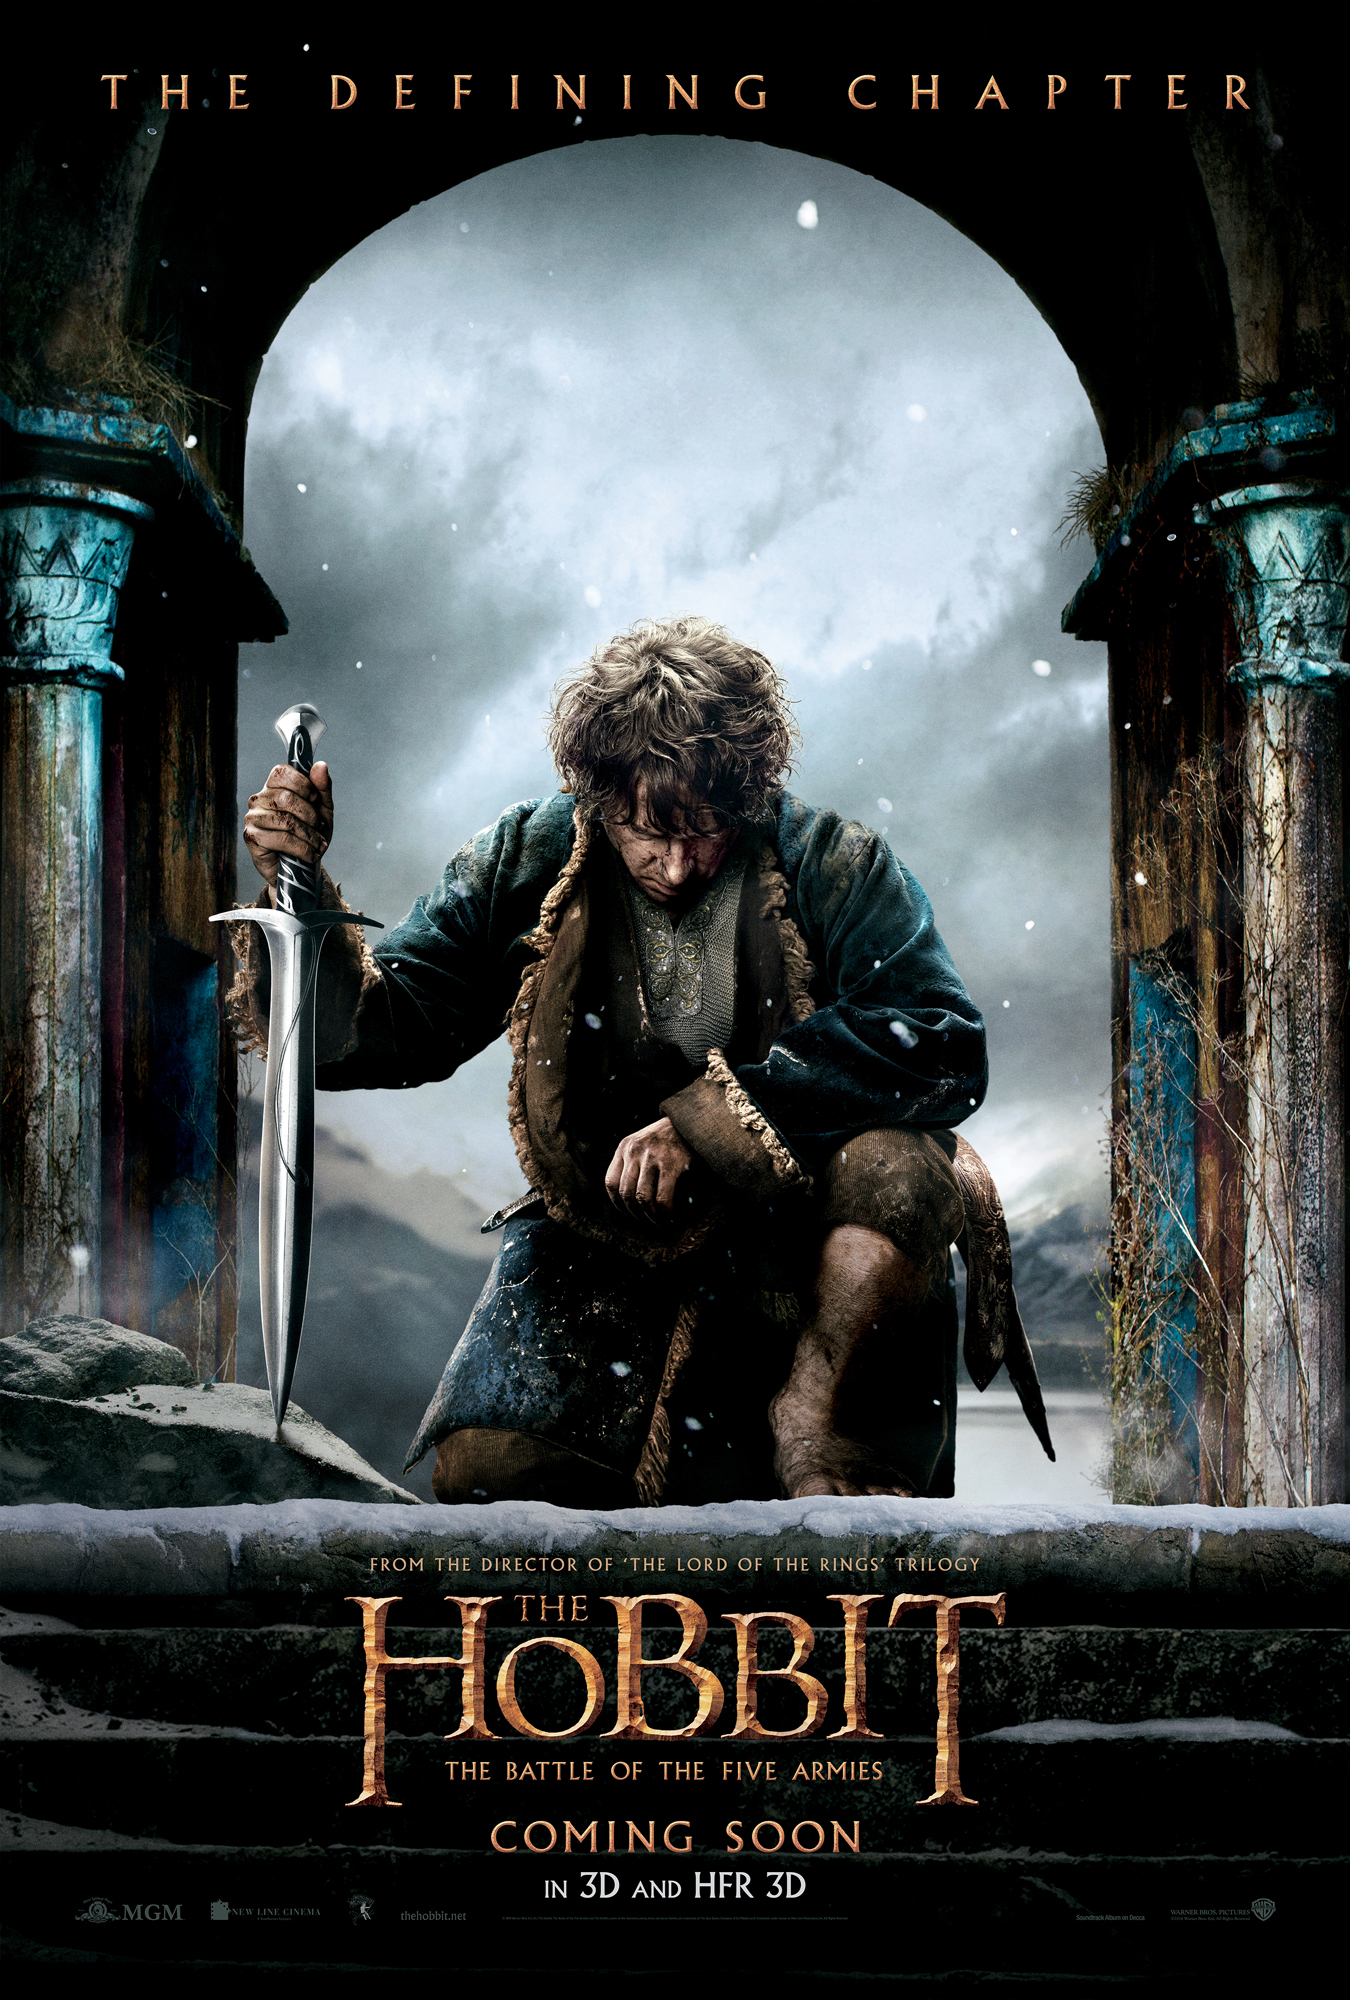 the hobbit 2 full movie in hindi dubbed download 720p